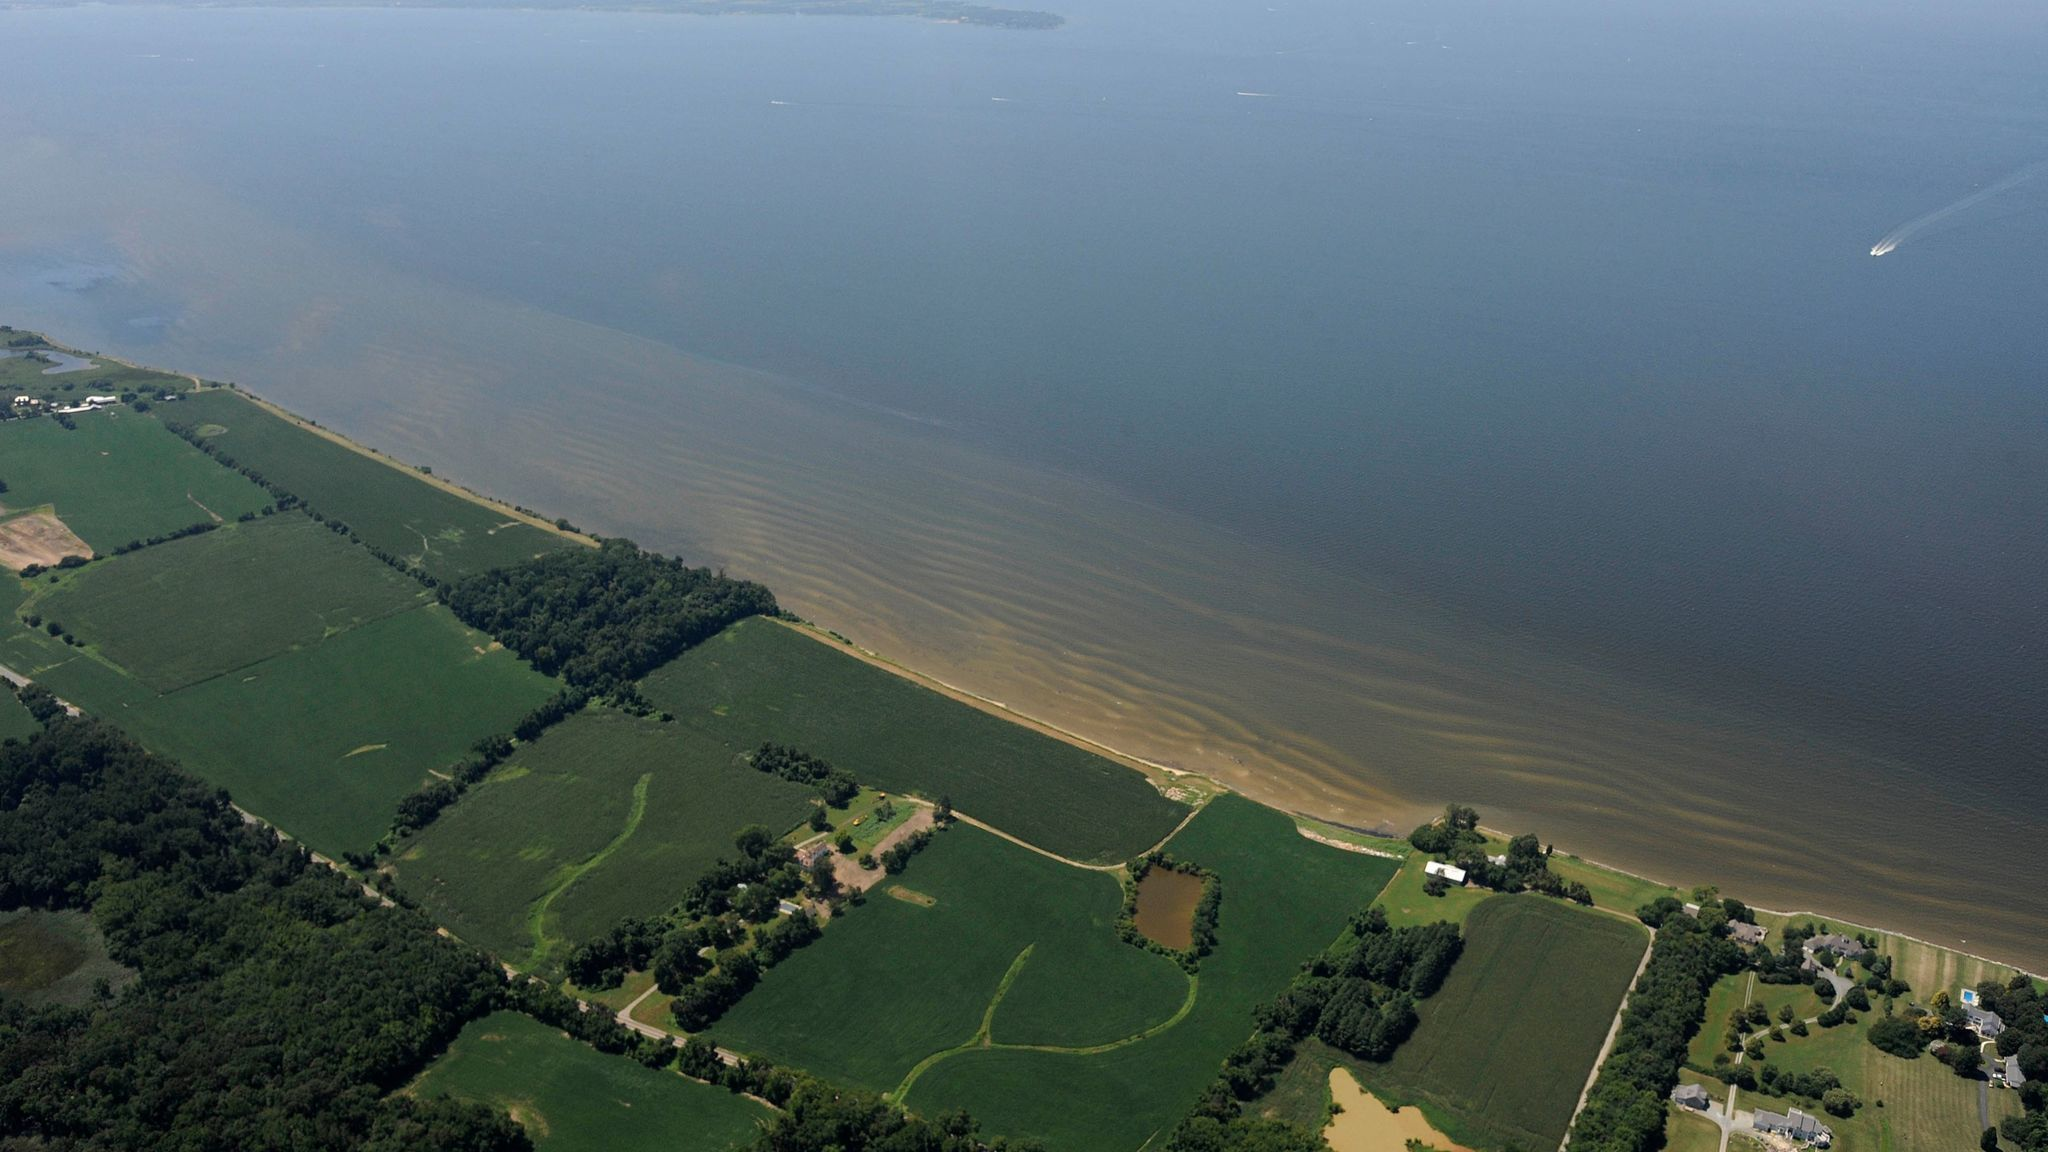 Amendment To EPA Funding Bill Would Strip Agency Of Power To Enforce Chesapeake Cleanup Plan